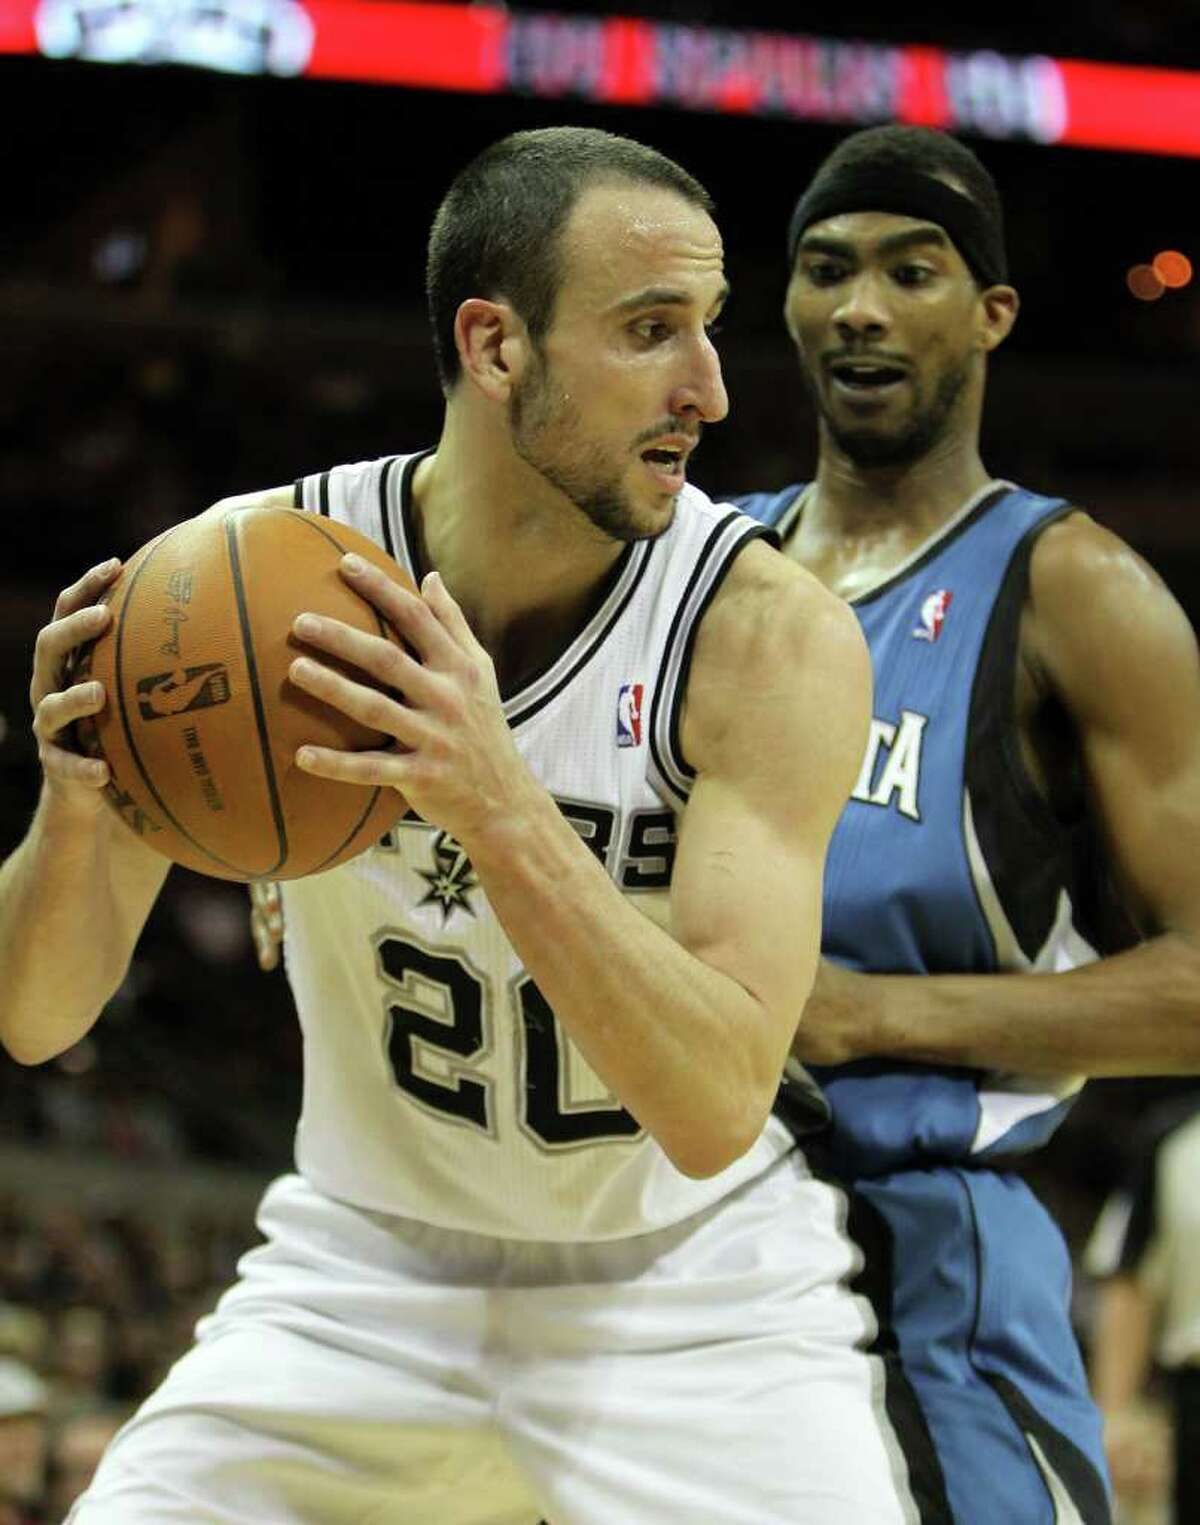 Manu Ginobili looks to pass in the second half of the Spurs vs. Minnesota Timberwolves matchup at the AT&T Center, Sunday, January 9, 2011. The Spurs squeezed by 94-91.